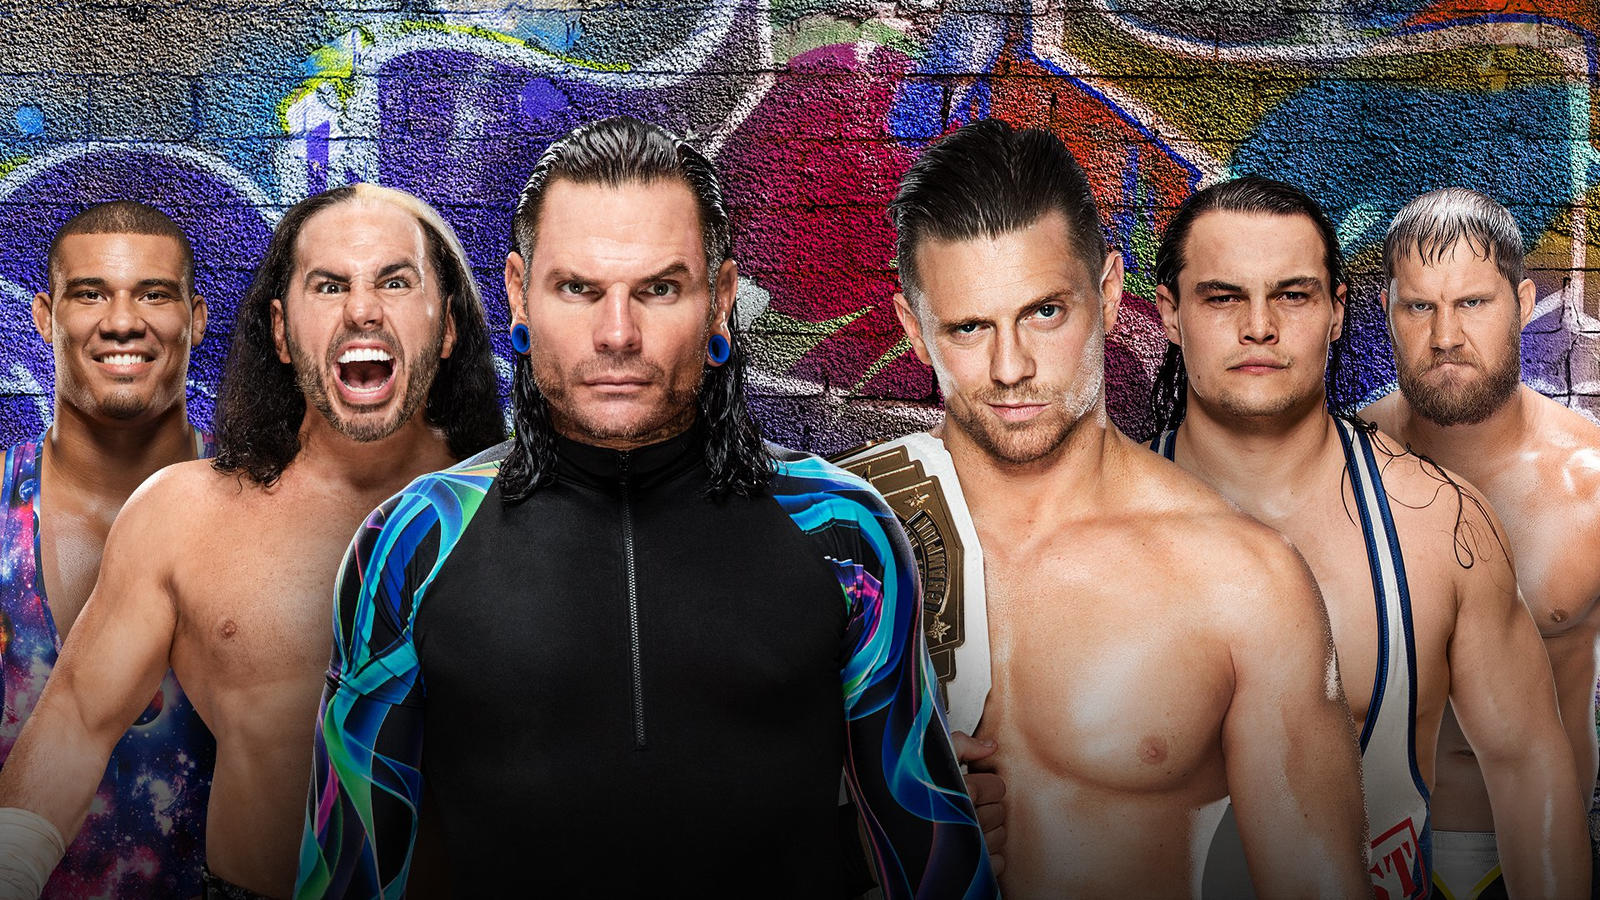 Image result for The Hardy Boyz and Jason Jordan Vs. The Miz and The Miztourage Summerslam